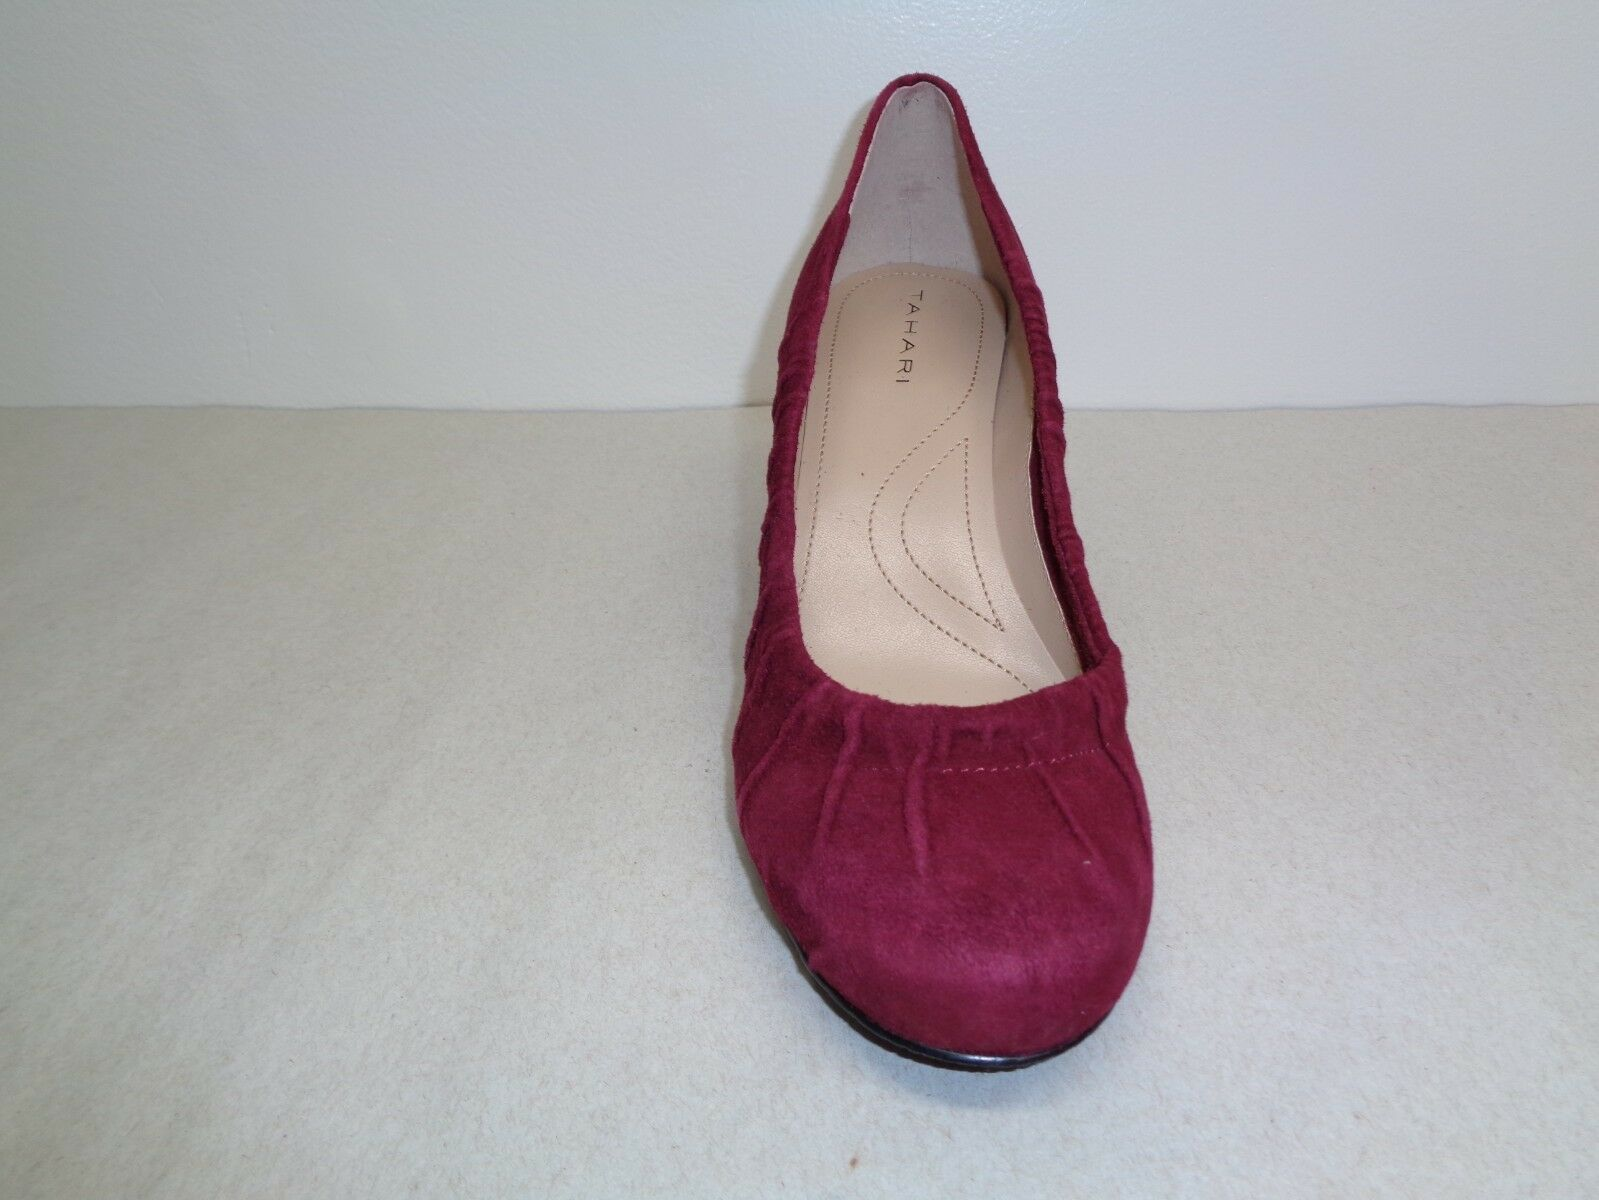 Tahari Größe 8 M ELIZABETH Canyon ROT Schuhes Suede Leder Heels Pumps New Damenschuhe Schuhes ROT 363fbe